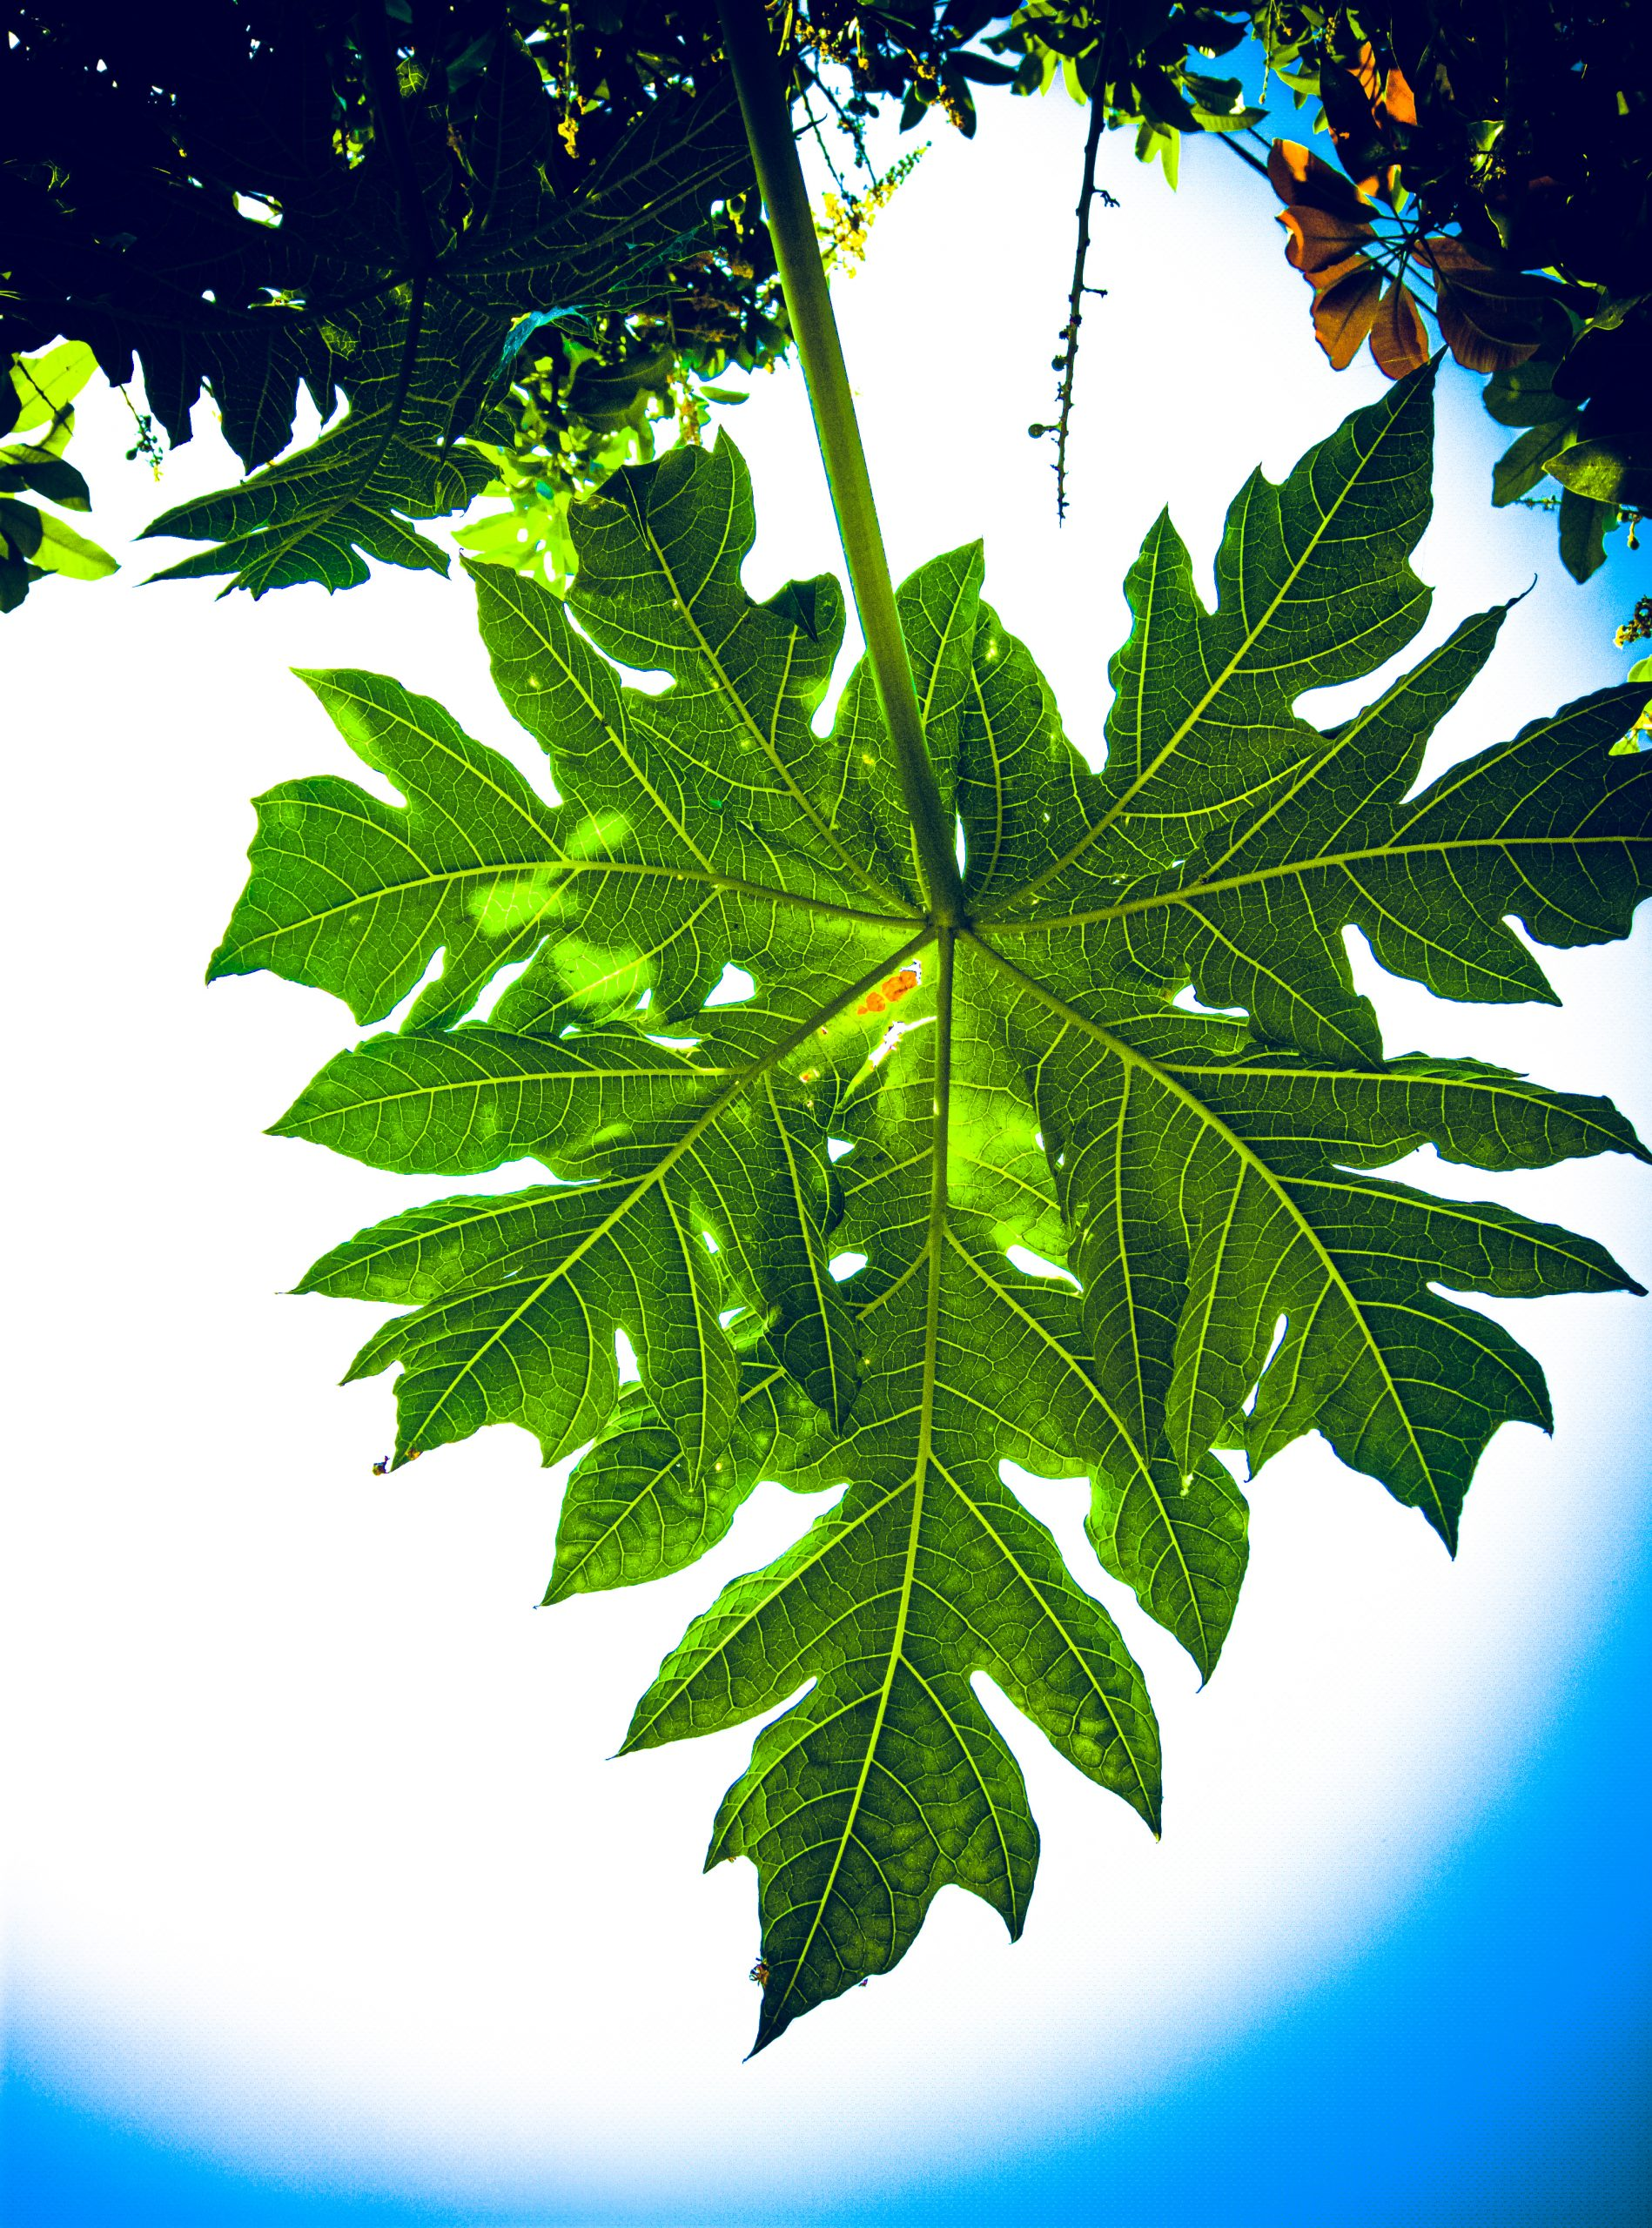 Papaya tree leaves